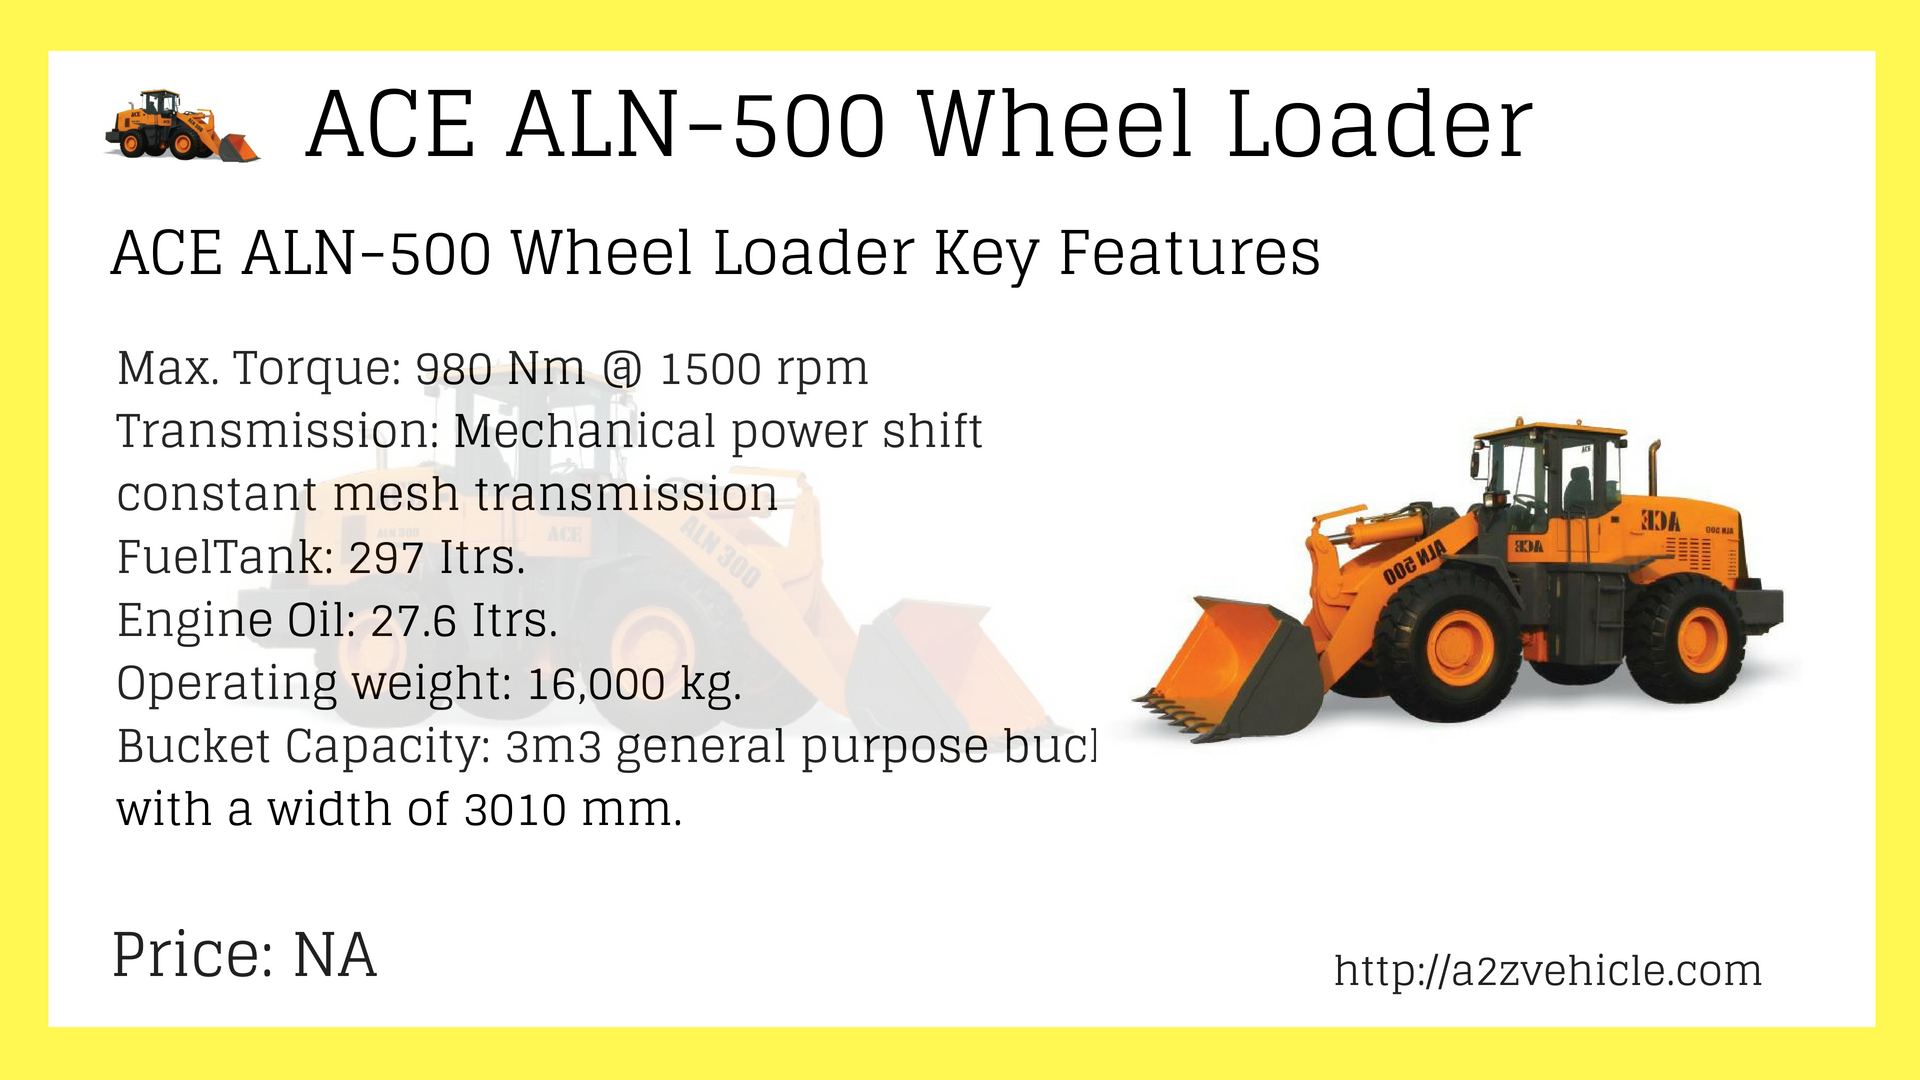 ACE ALN-500 Wheel Loader Price in India